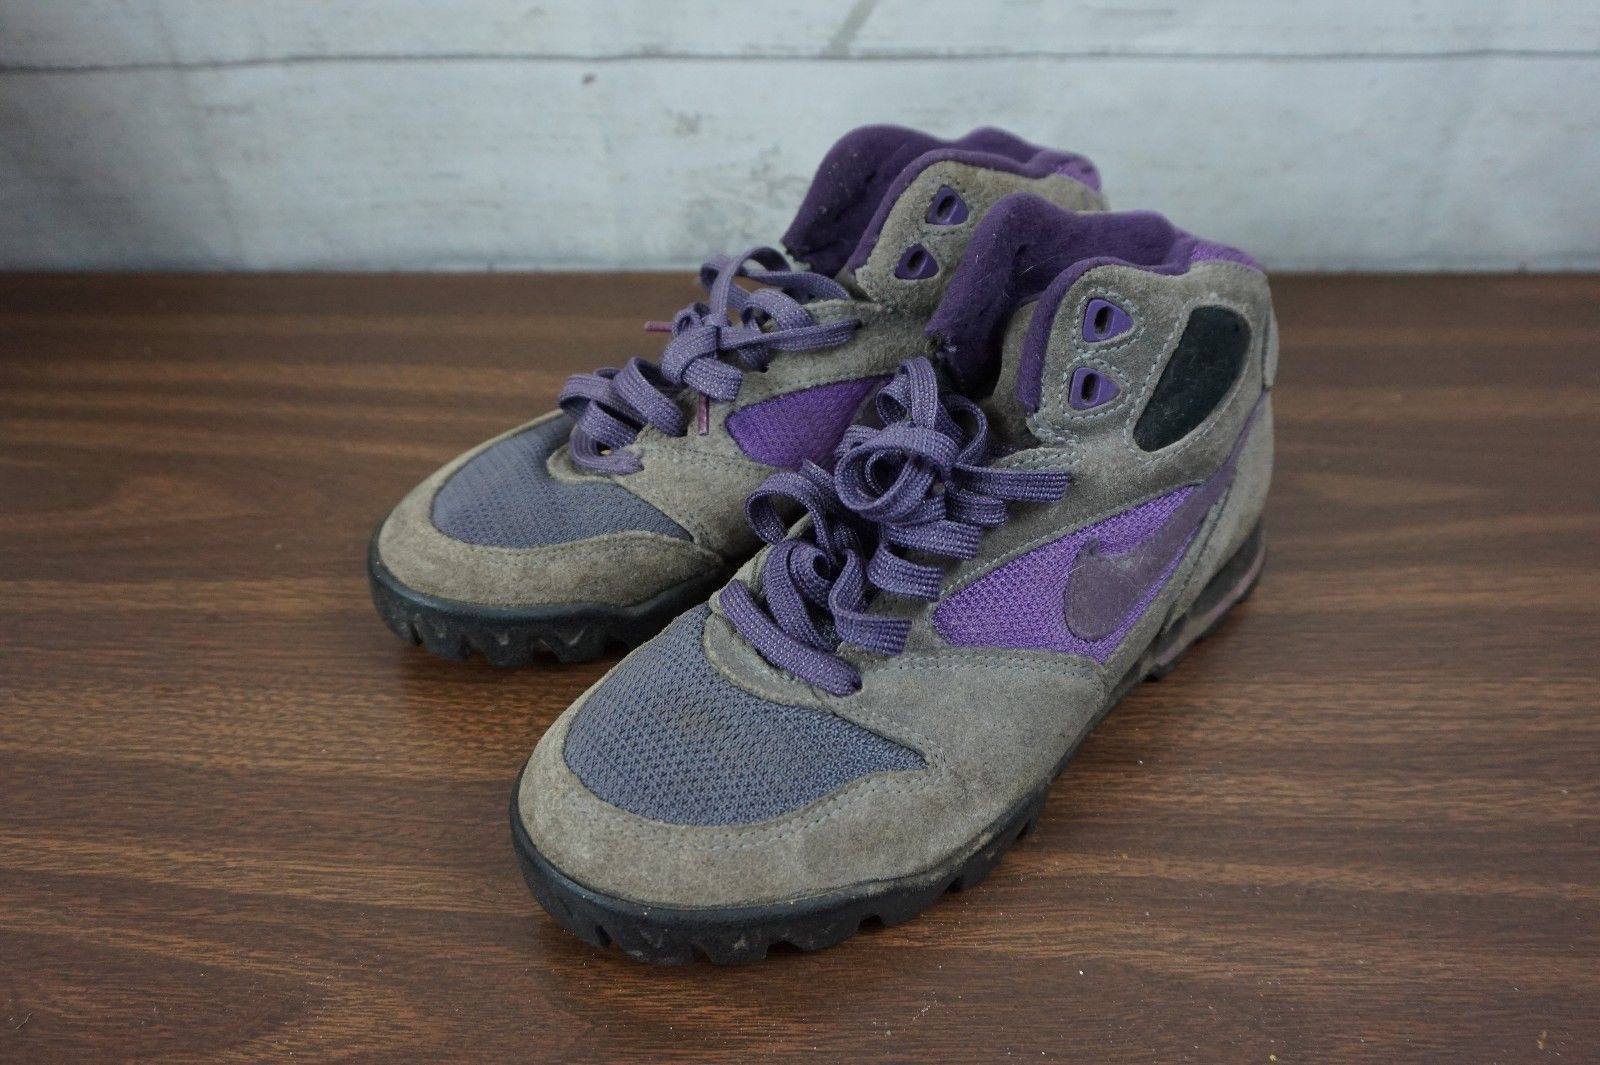 Vintage 1993 Nike Caldera Hiking Boots Purple 185090-450 Women's Size 7.5